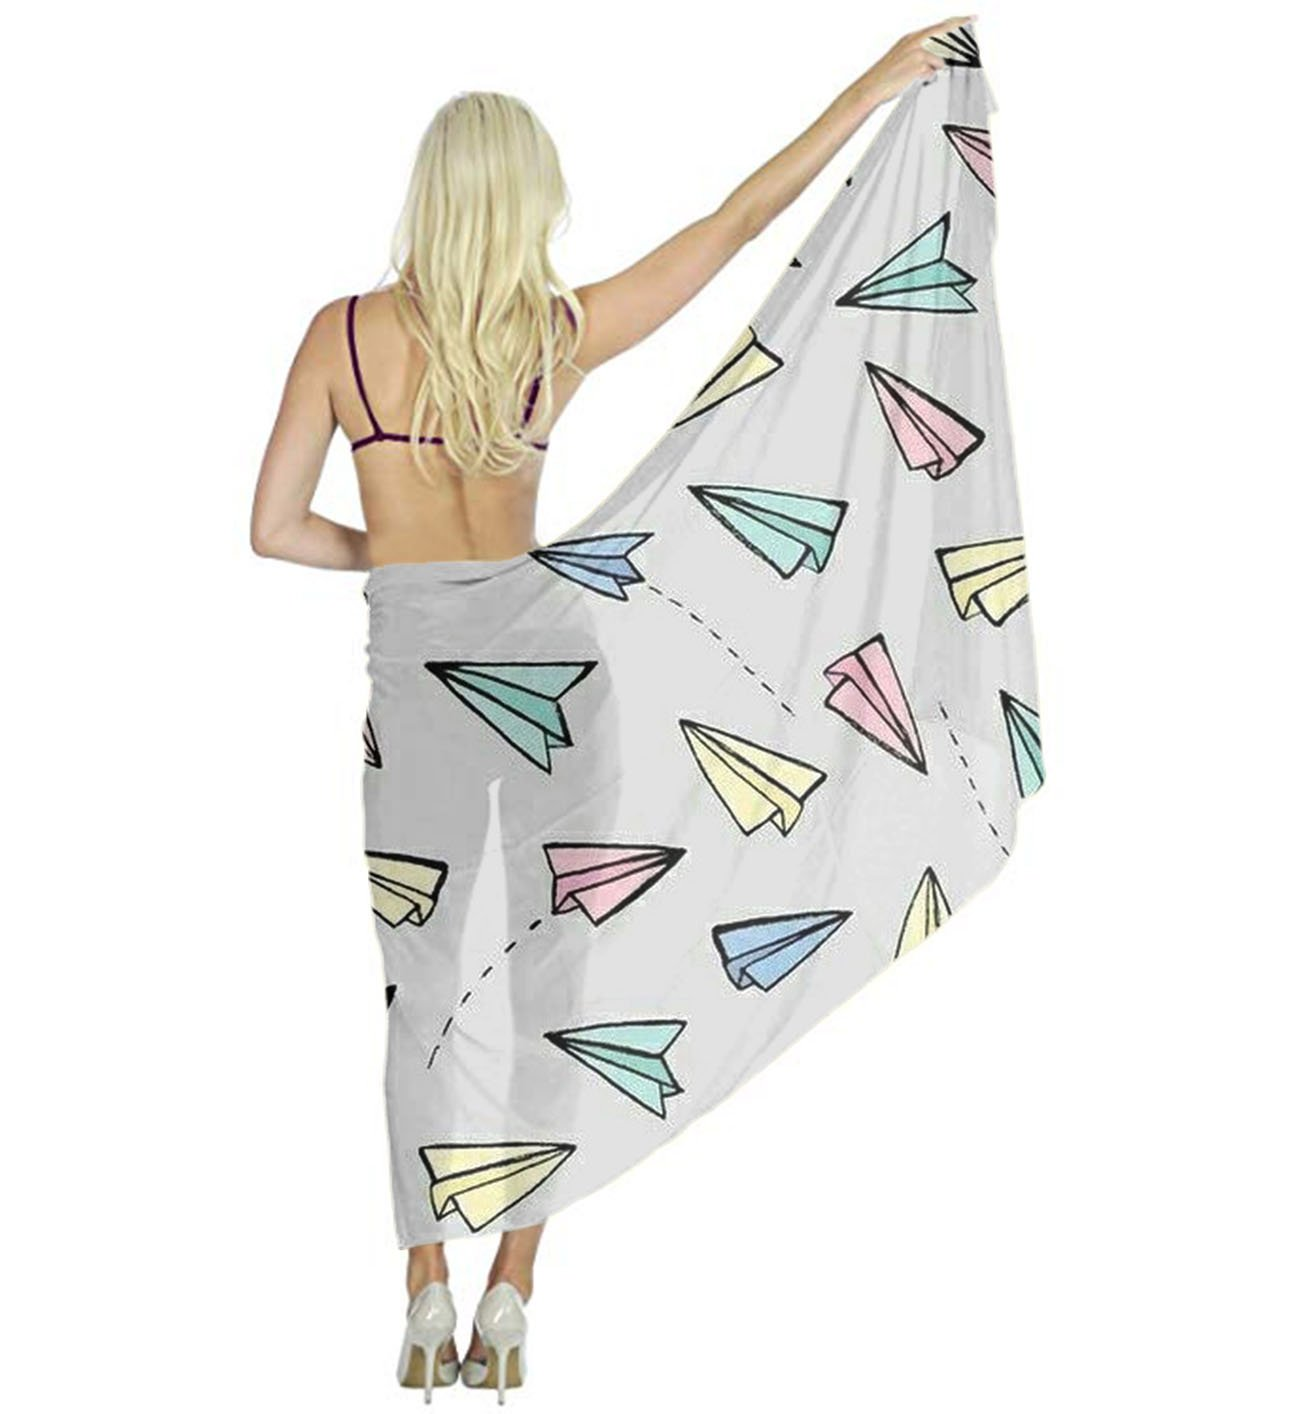 AMERICAN TANG Swimwear Chiffon Printed Cover up Beach Sarong Wrap - Flying Paper Airplanes Silk Scarf - Bikini Swimsuit Wrap Pareo Dress - Perfect gift for woman